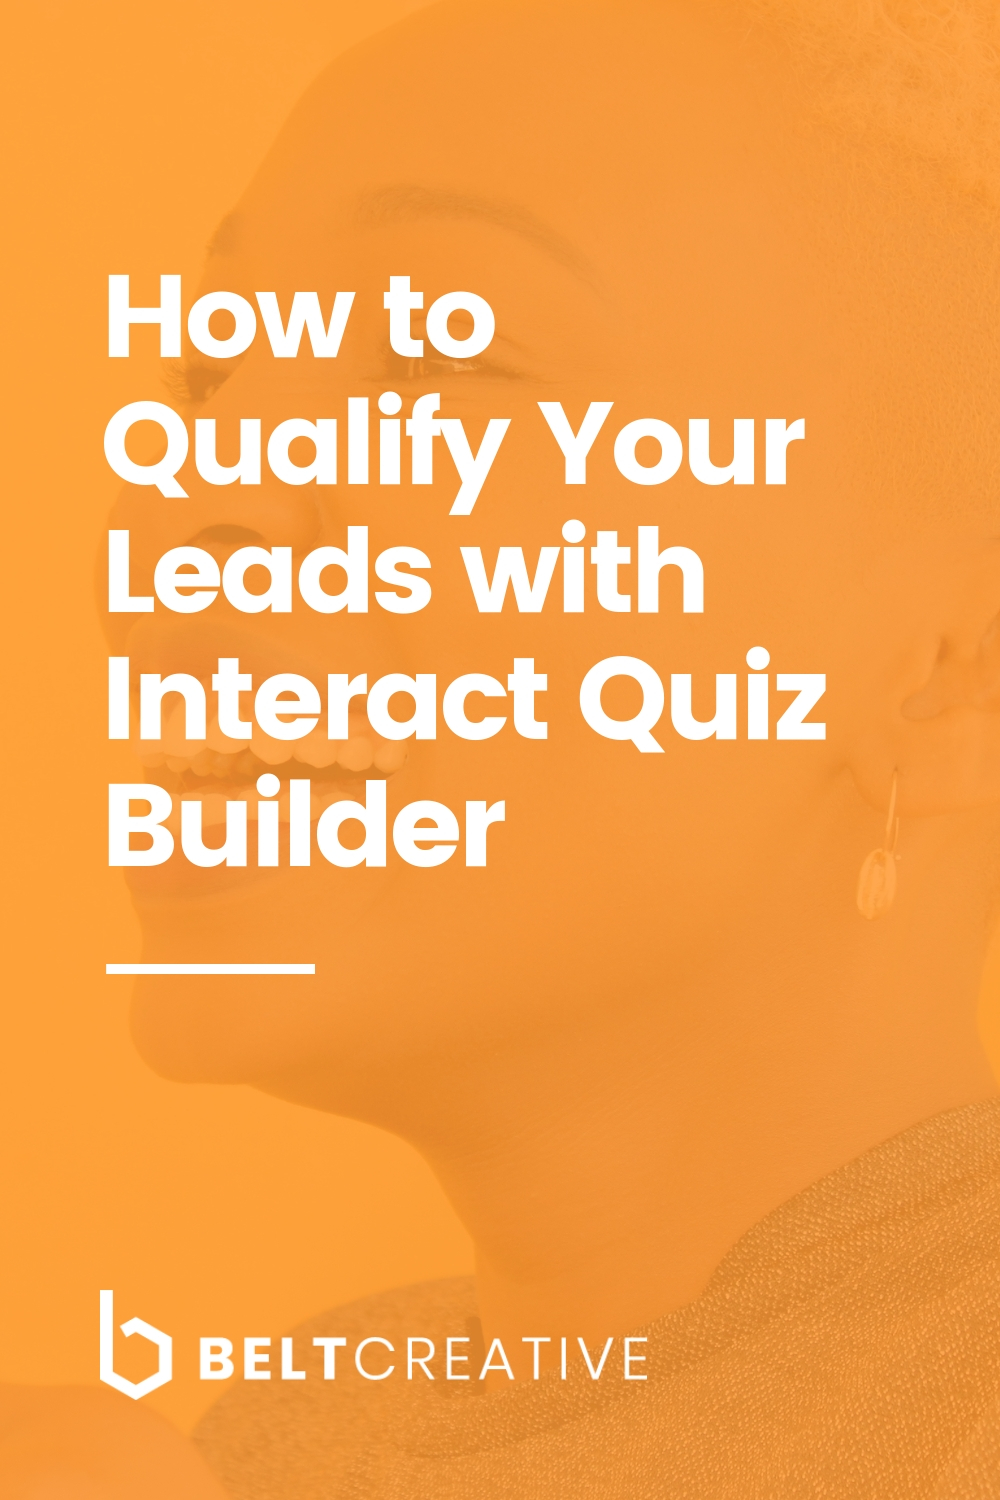 How to Qualify Your Leads with Interact Quiz Builder (1).jpg